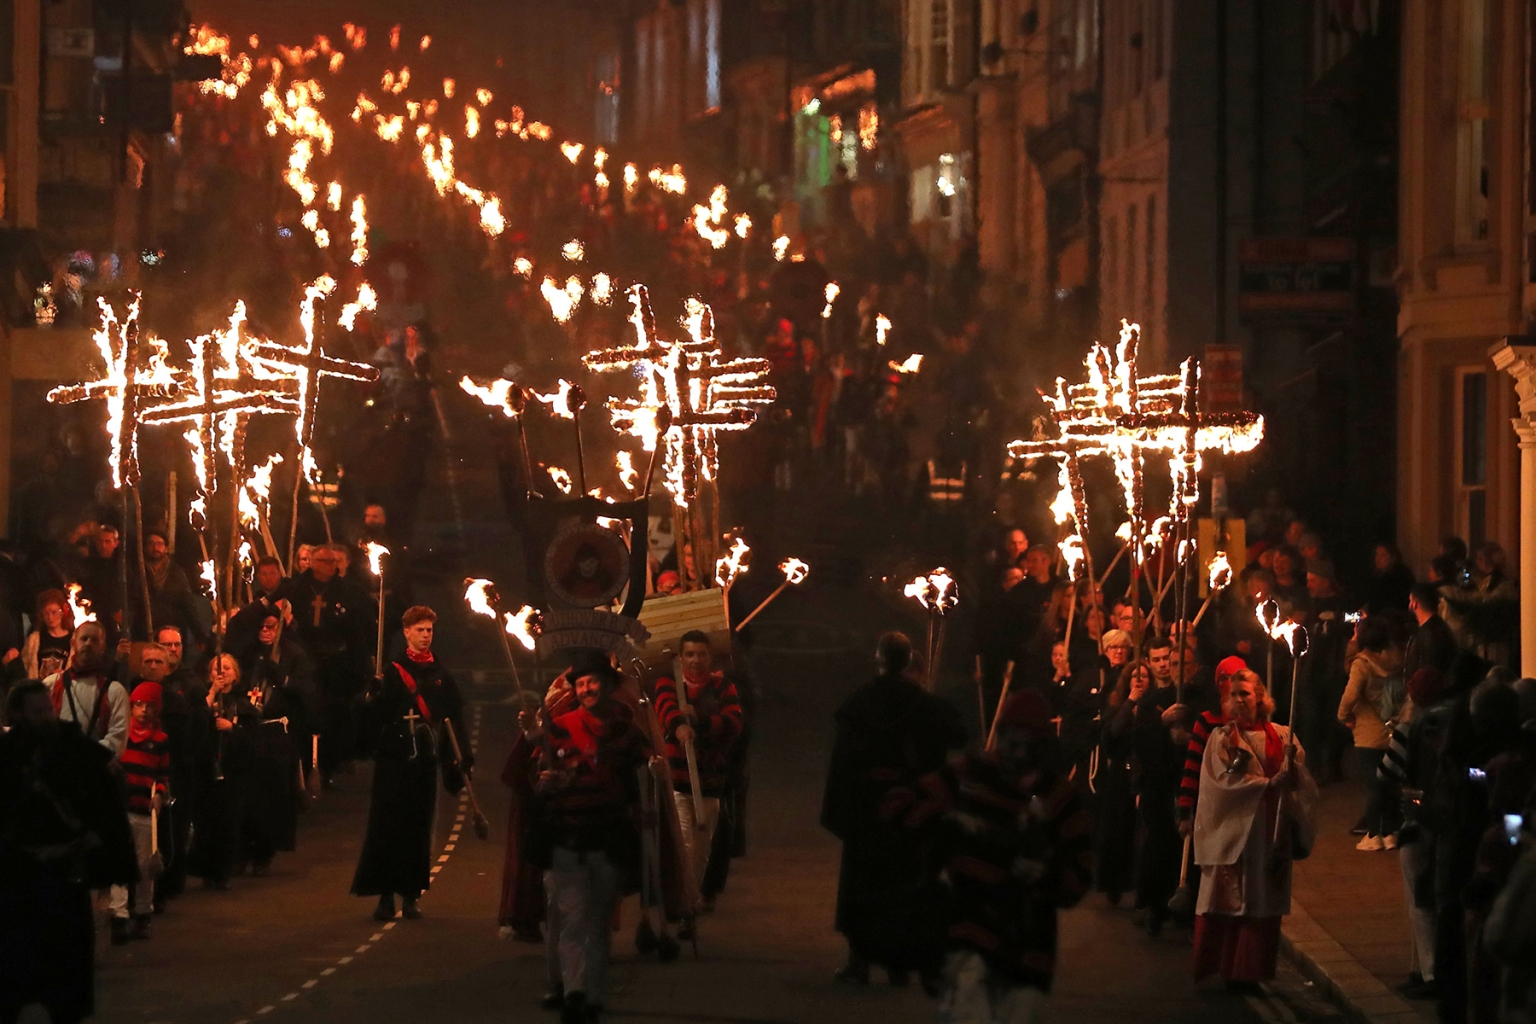 Revelers parade through the streets during the traditional Bonfire Night celebrations in Lewes, in East Sussex, southern England, on Nov. 5. Thousands of people attend the annual parade through the narrow streets until the evening comes to an end with the burning of an effigy usually representing Guy Fawkes, who died in 1605 after an unsuccessful attempt to blow up The Houses of Parliament. DANIEL LEAL-OLIVAS/AFP/Getty Images